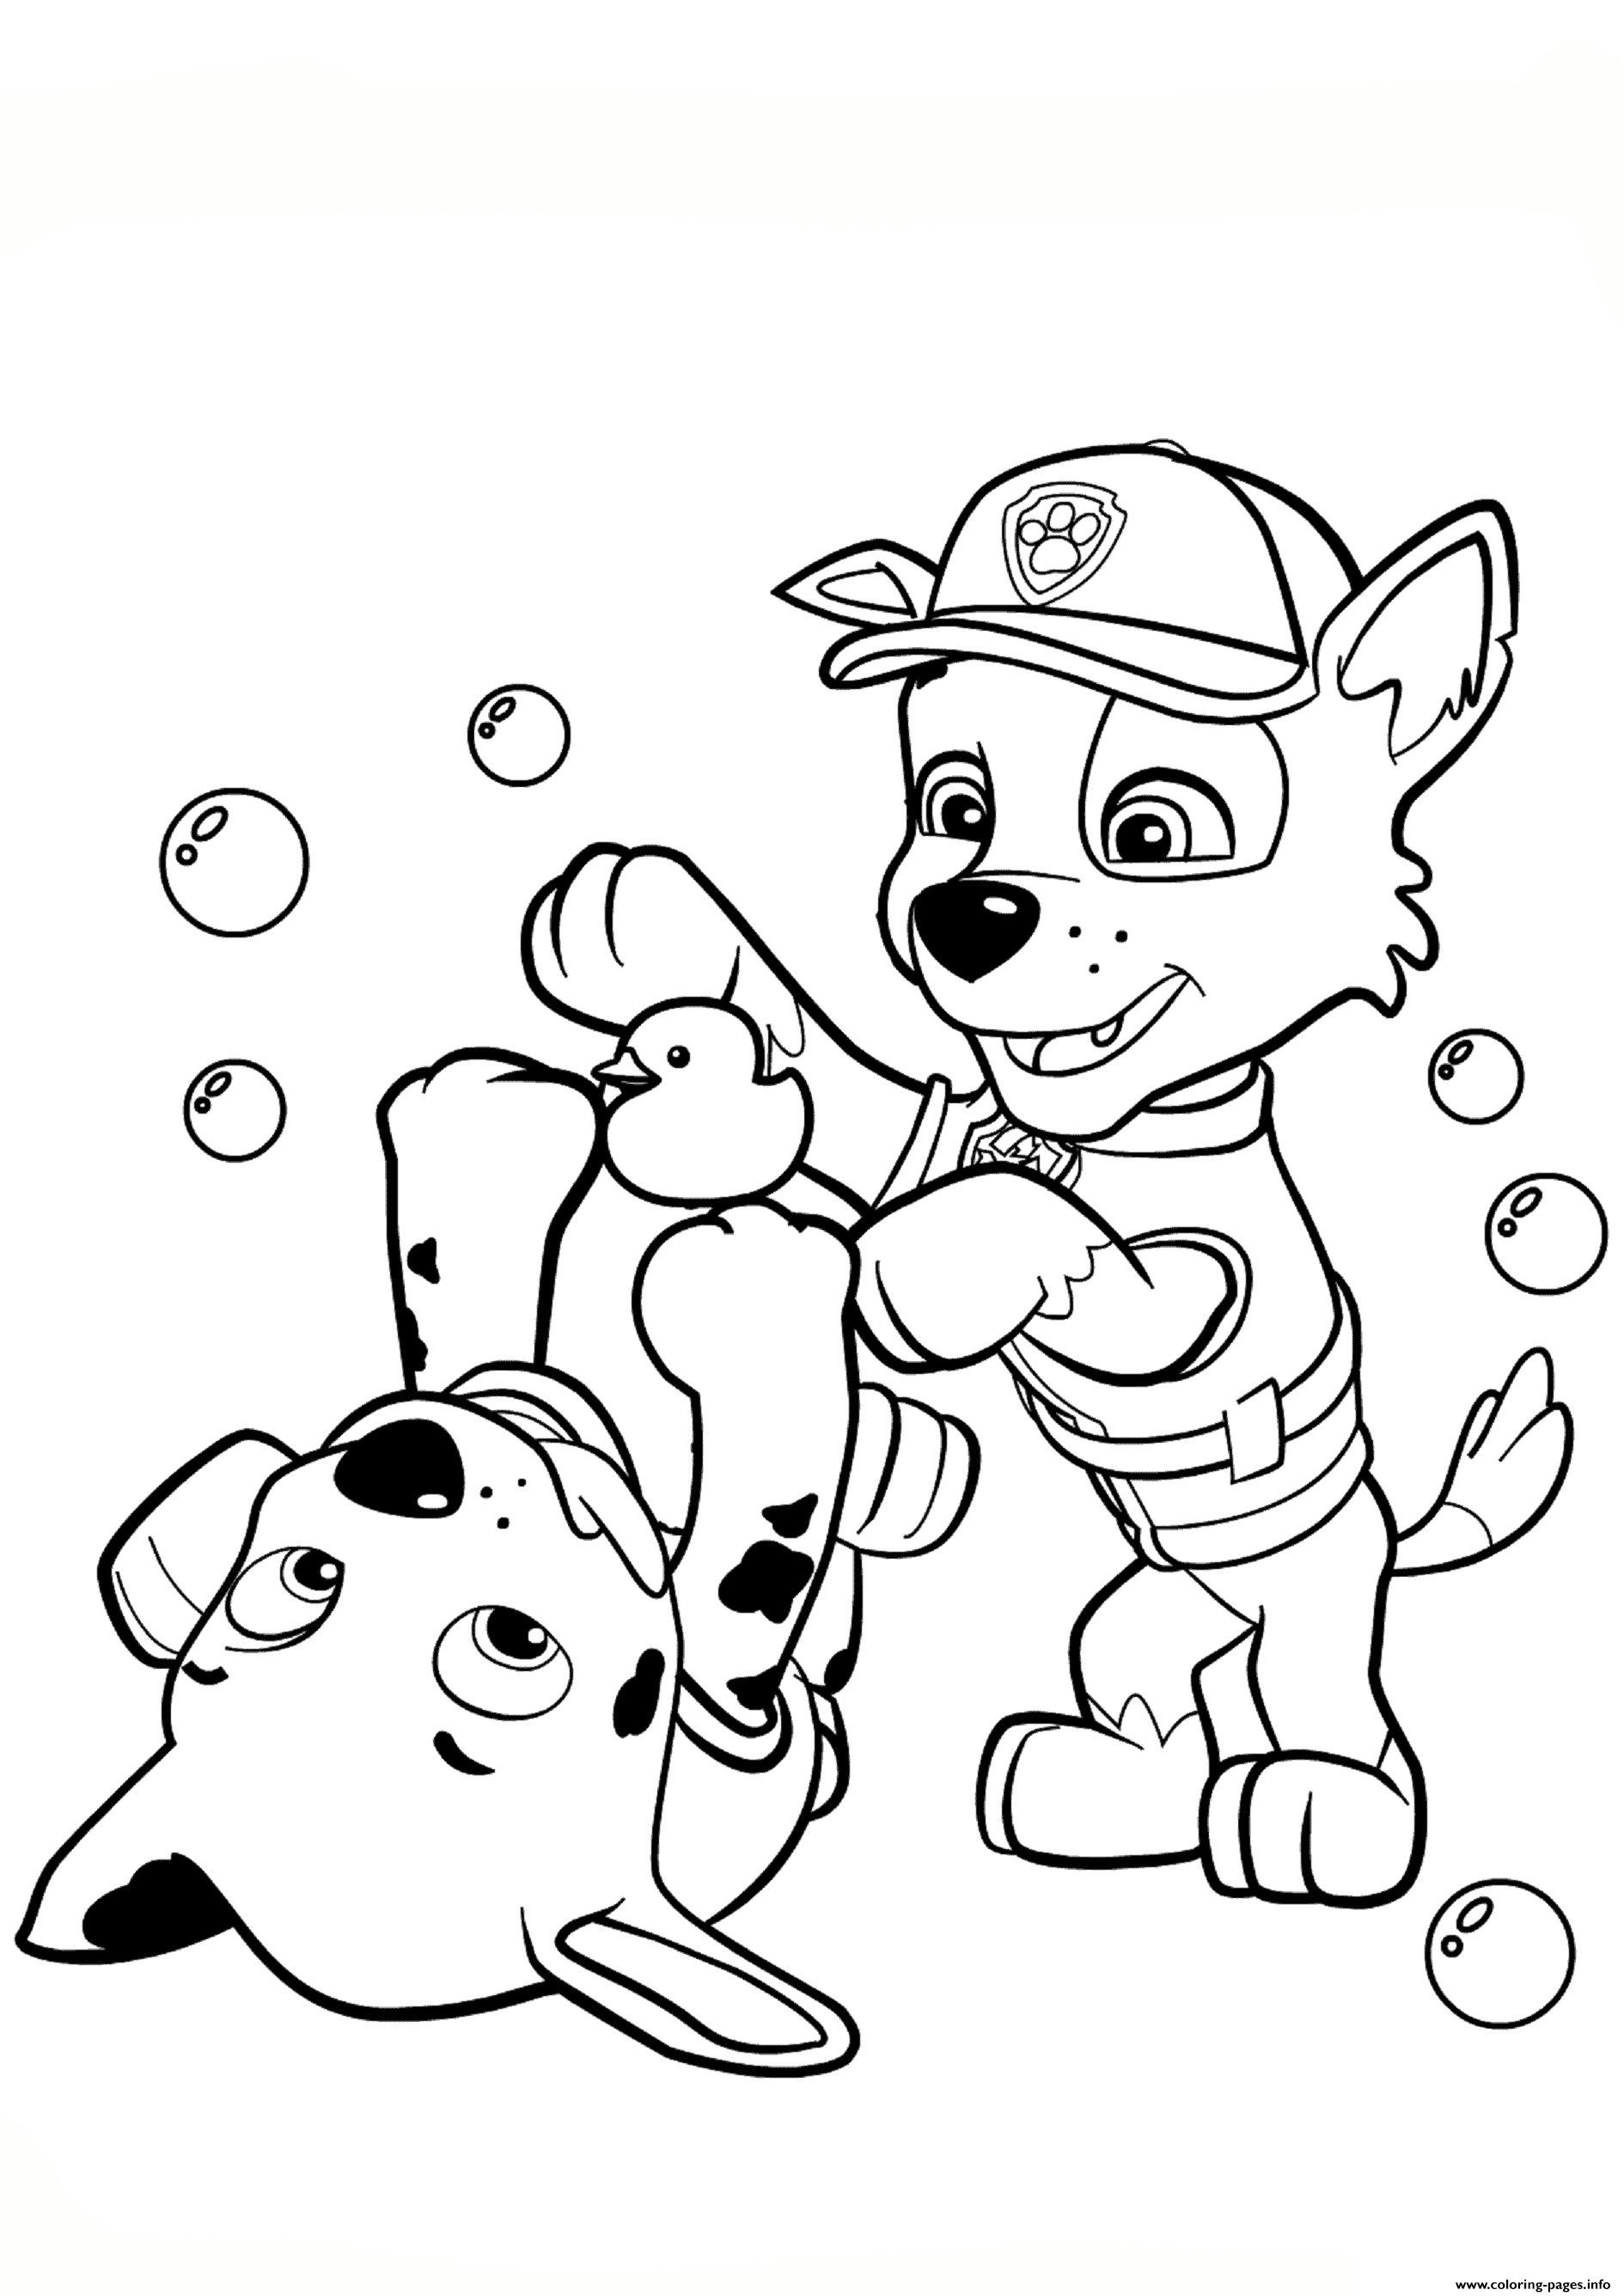 Paw Patrol Coloring Sheets Unique Coloring Paw Patrol Free To Color For Kids Coloring Pages Kiri In 2020 Paw Patrol Coloring Pages Paw Patrol Coloring Coloring Pages